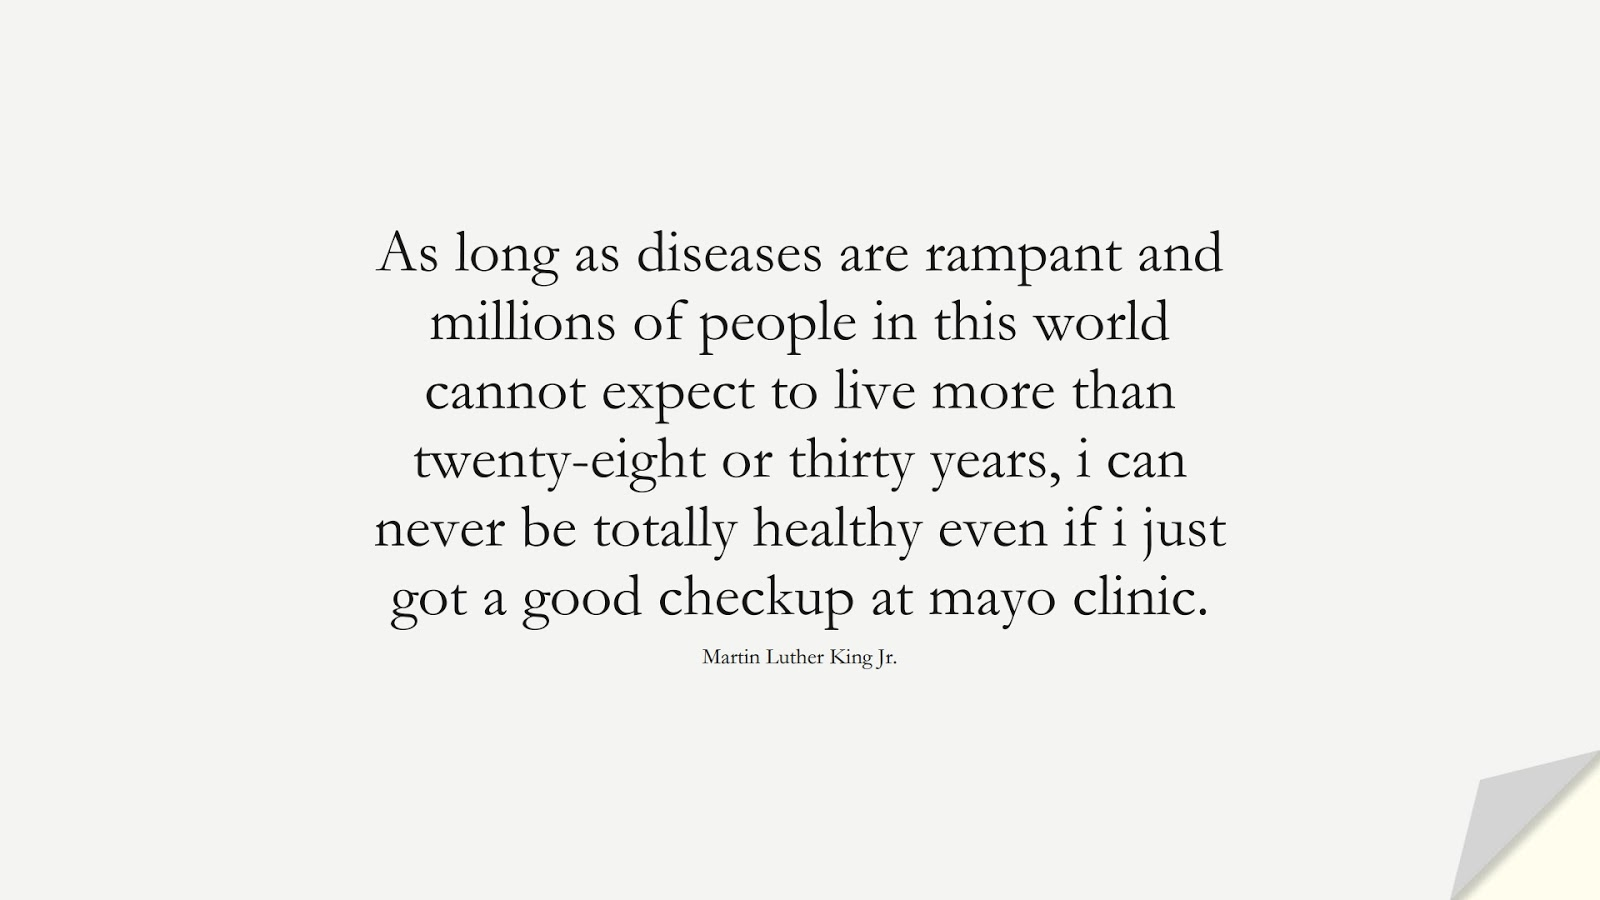 As long as diseases are rampant and millions of people in this world cannot expect to live more than twenty-eight or thirty years, i can never be totally healthy even if i just got a good checkup at mayo clinic. (Martin Luther King Jr.);  #MartinLutherKingJrQuotes